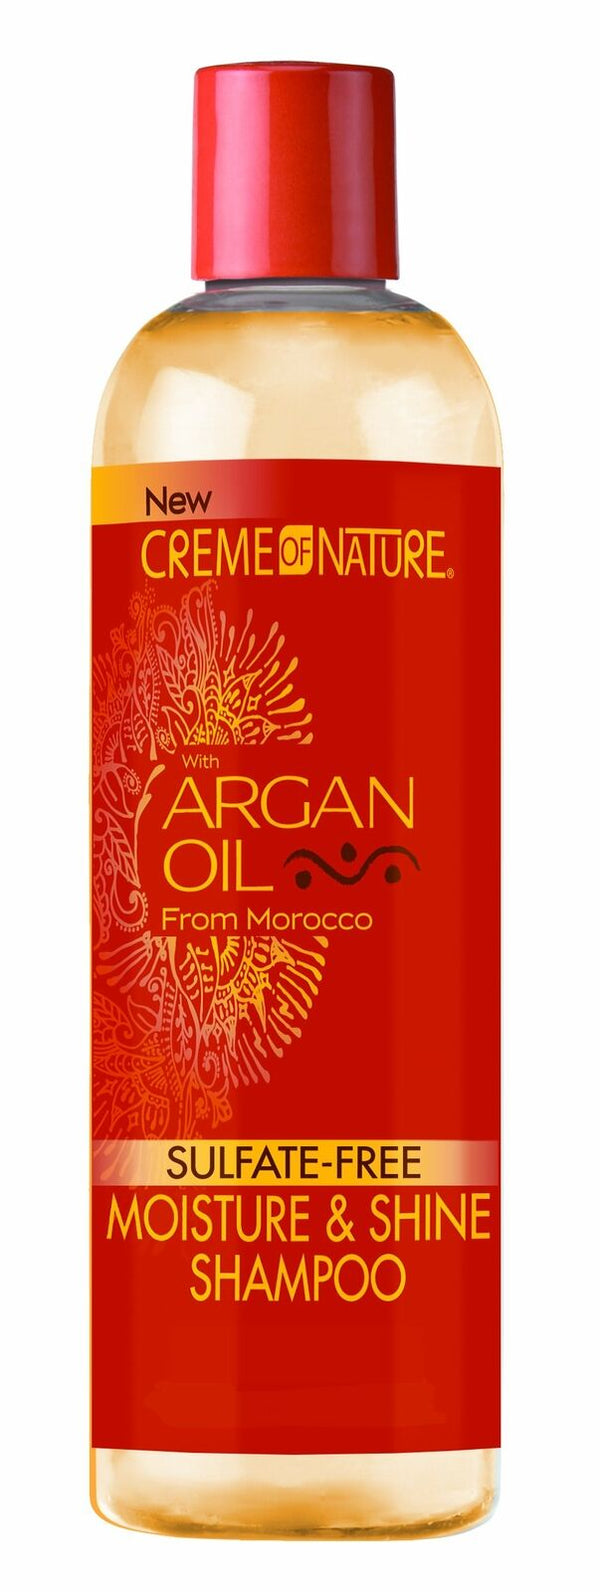 Creme of Nature Moisture & Shine Shampoo with Argan Oil 12 OZ